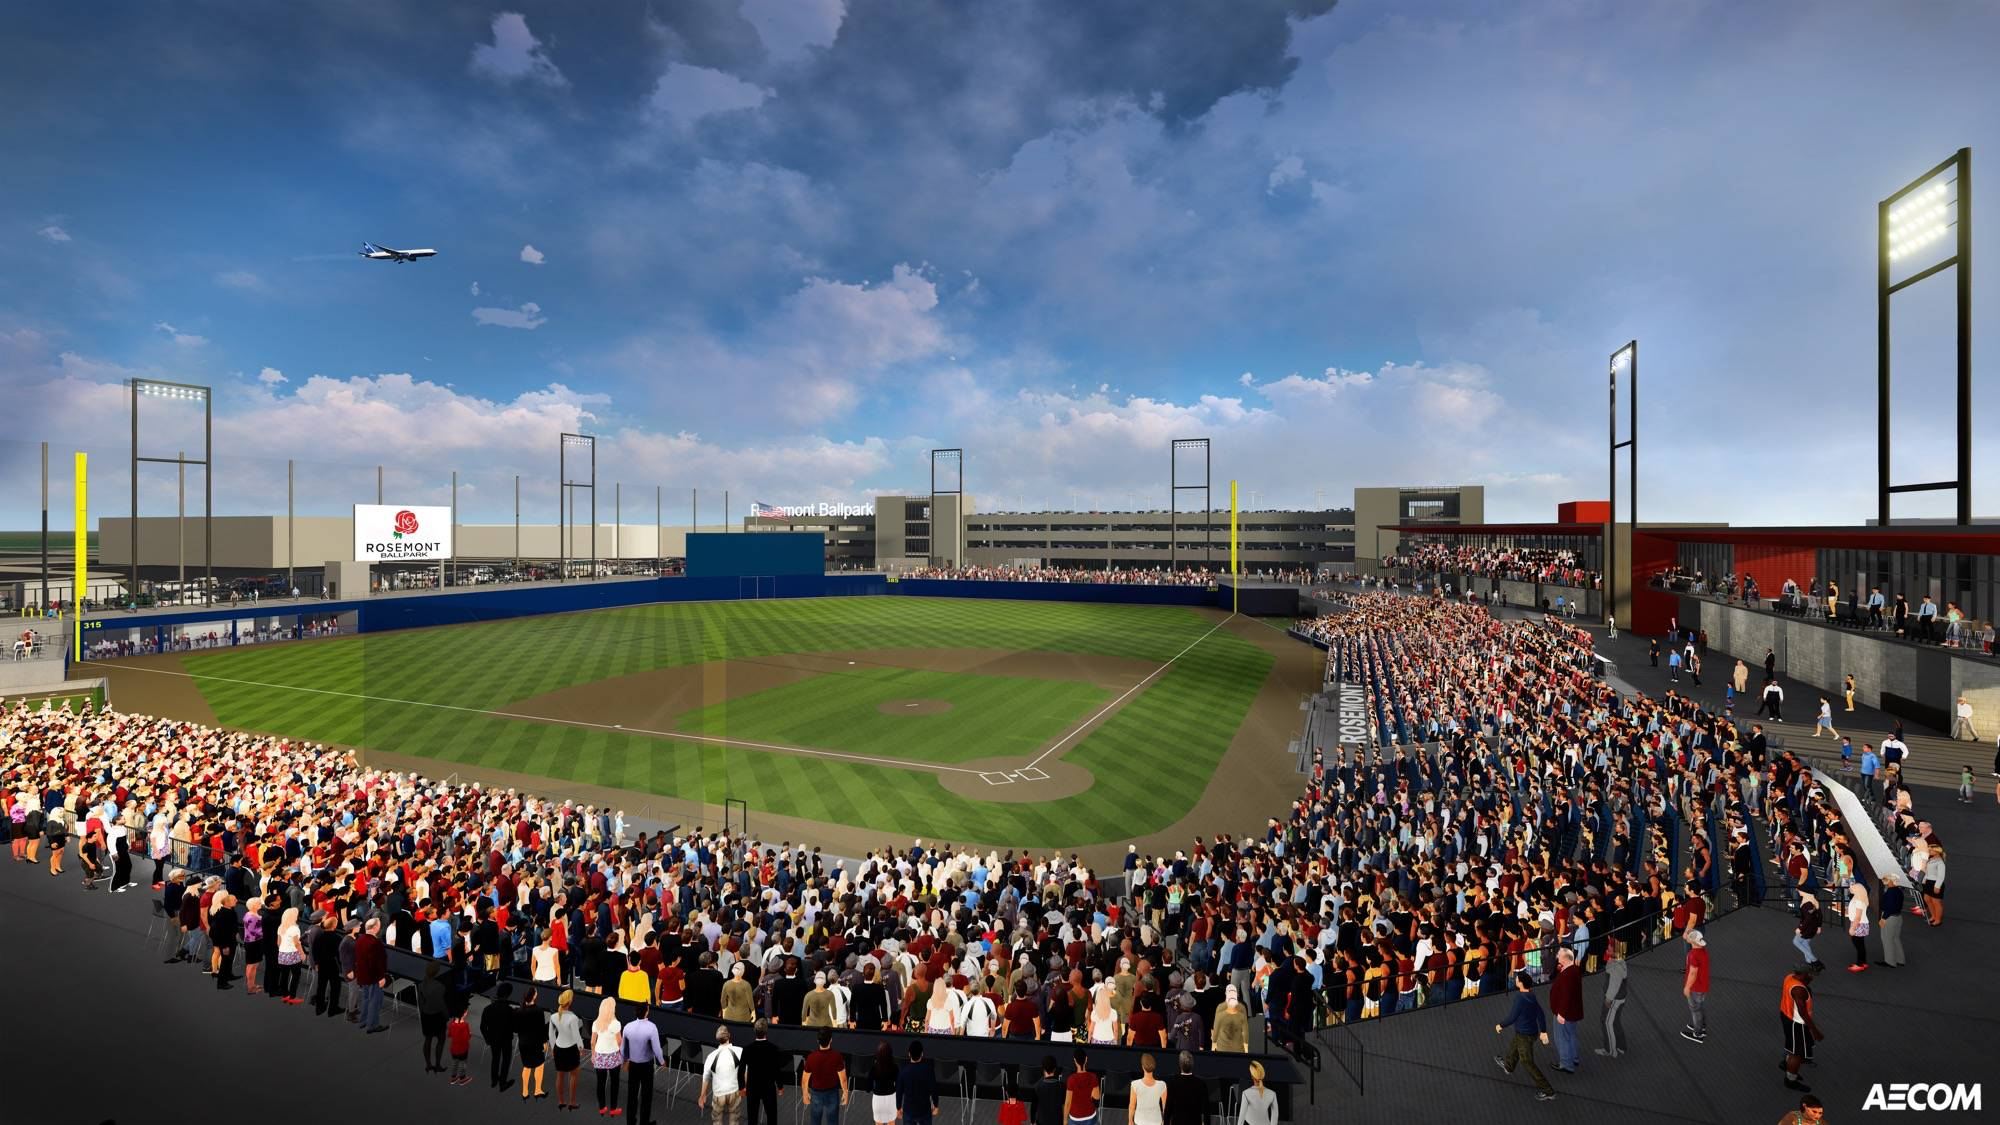 A sketch shows what the $60 million, 6,300-seat minor league baseball stadium now under construction in Rosemont will look like when complete in May 2018.